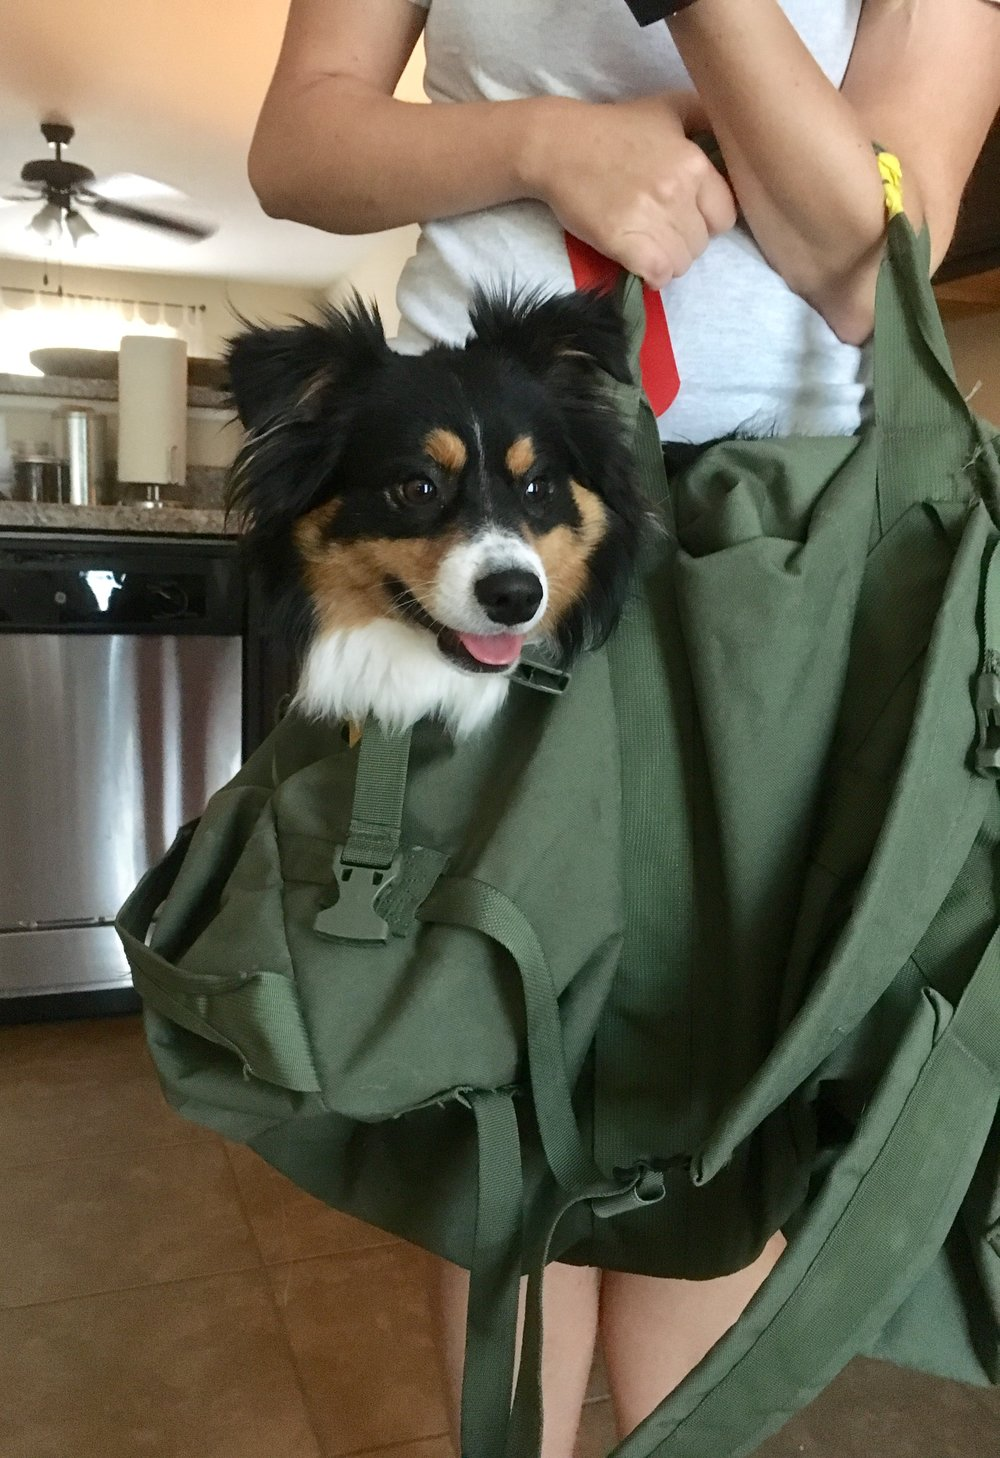 PCS-with-dogs-carry-on-carriers-schuyler-croy-main.jpg